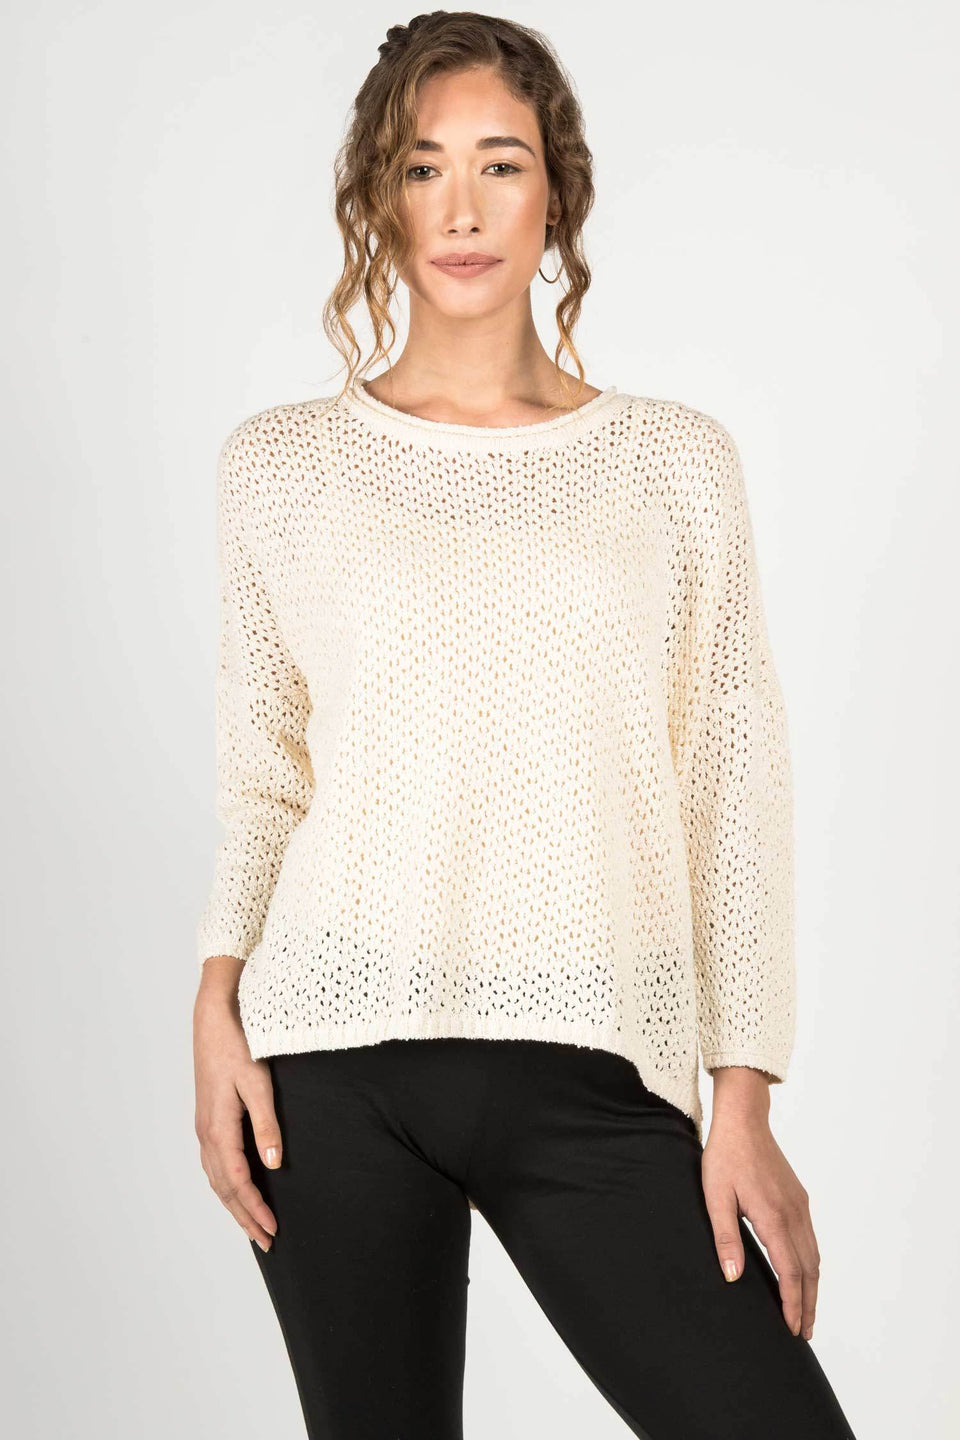 Boucle Mesh Pullover in Ivory